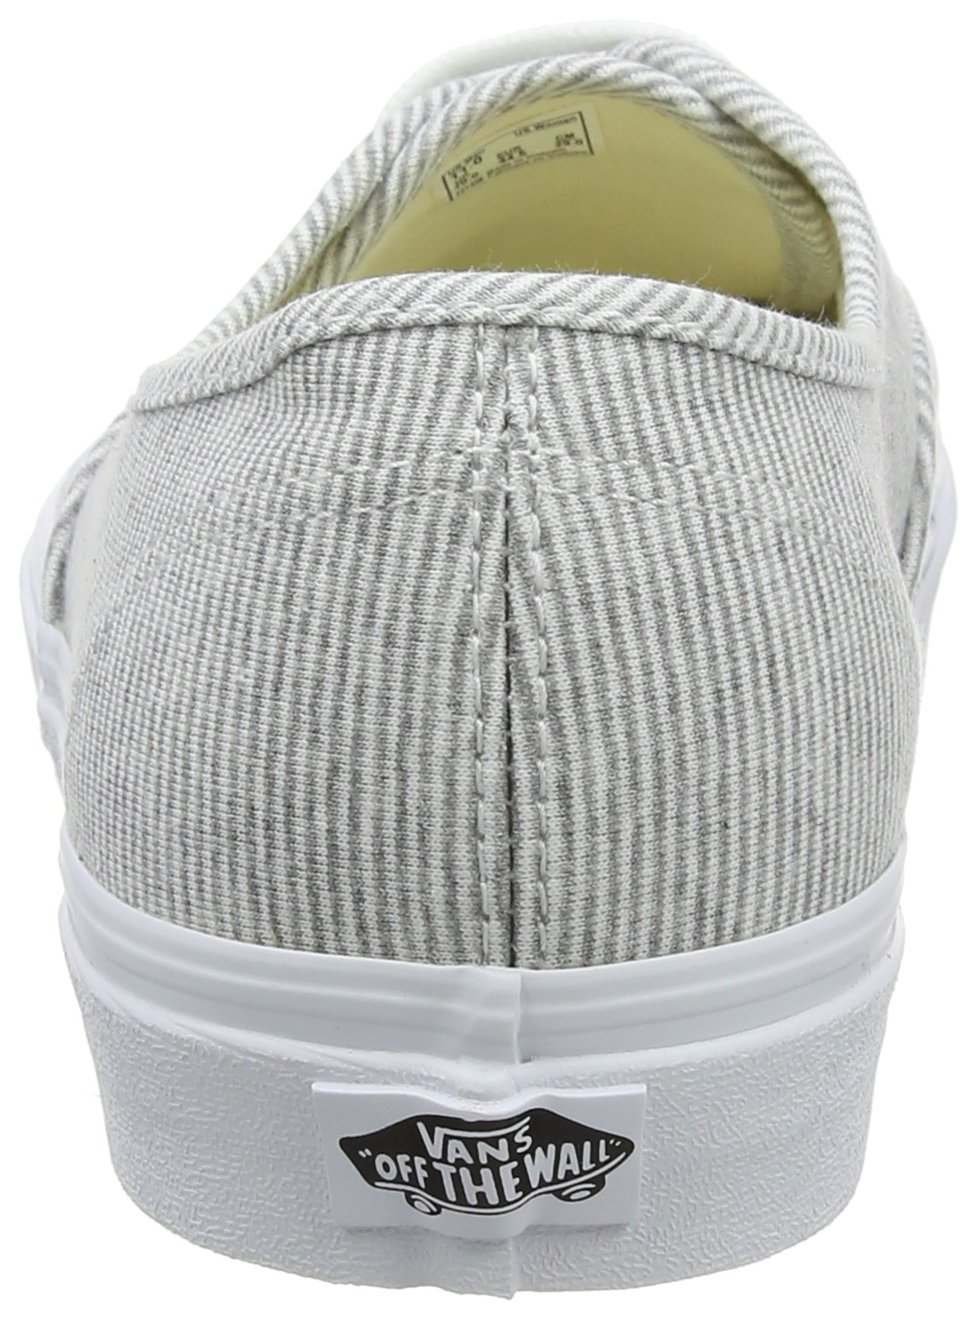 Vans Unisex Authentic Canvas US Shoes B076CV8QYQ 8 M US Canvas Women / 6.5 M US Men|Gray/True White 3475d3